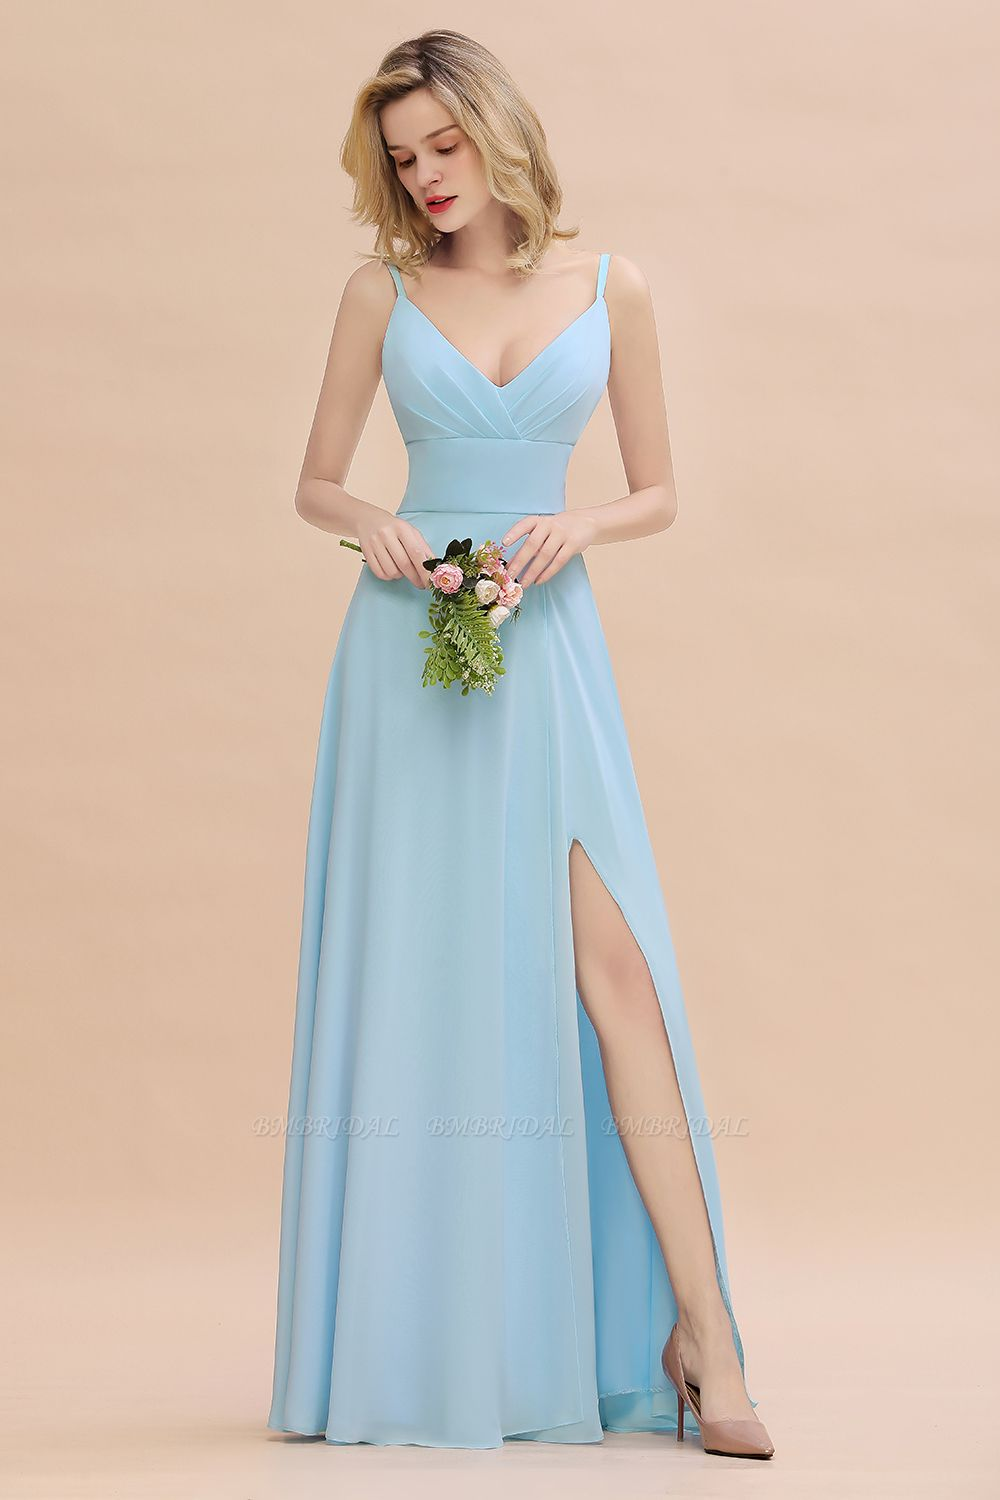 A Good Place To Find Affordable Bridesmaid Dresses